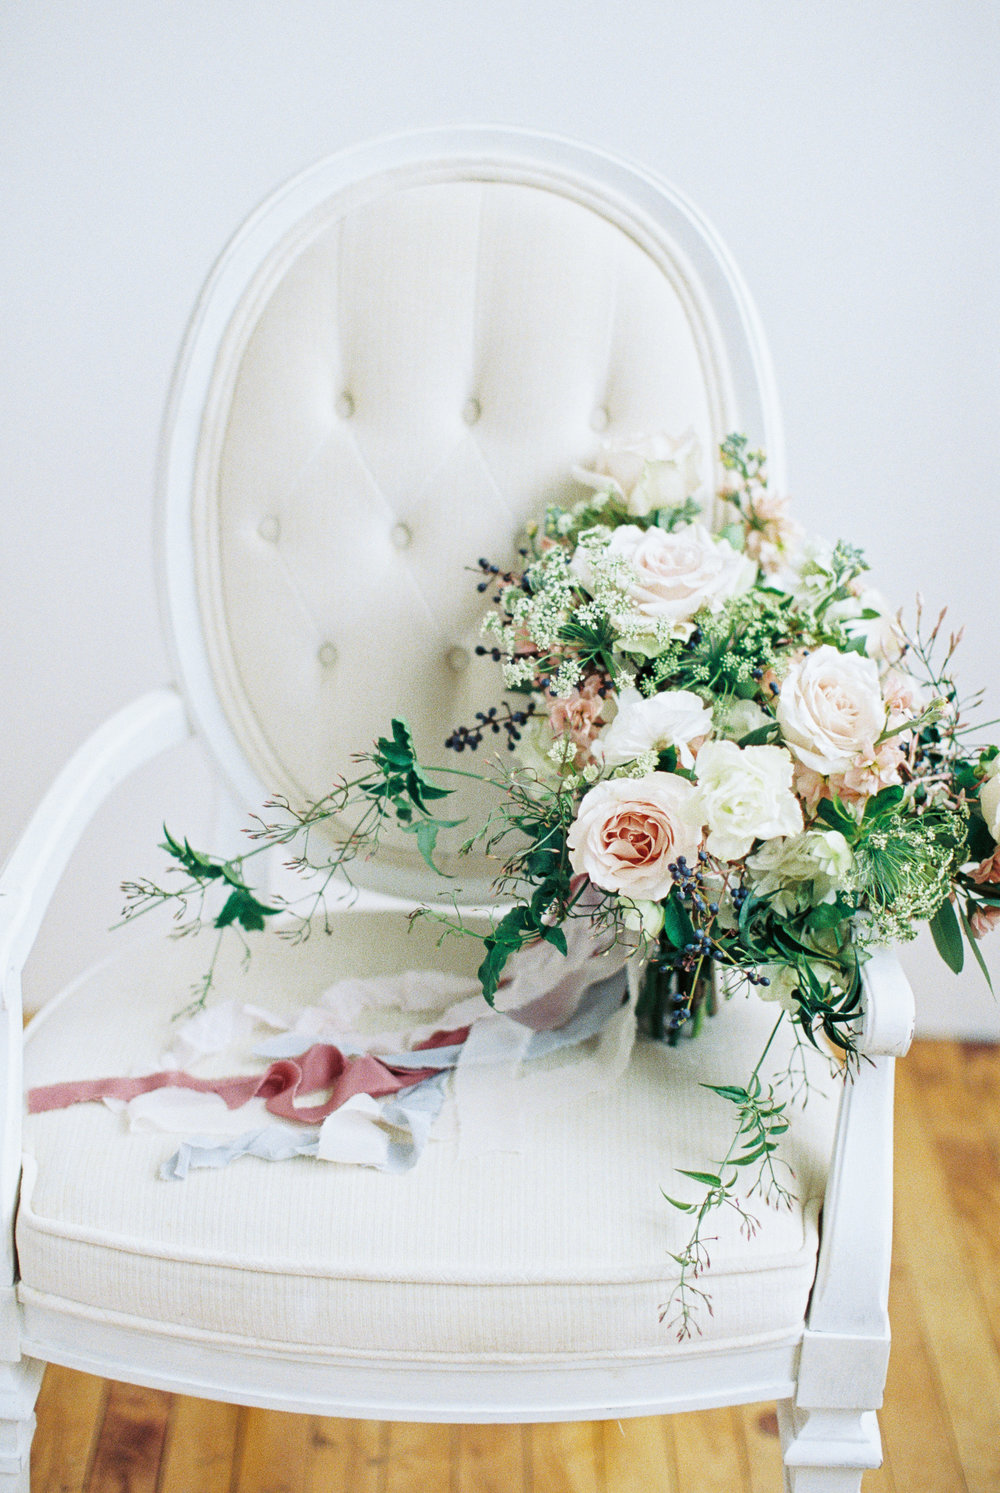 Bridalbliss.com | Portland Wedding | Oregon Event Planning and Design | Ashley Cook Photography